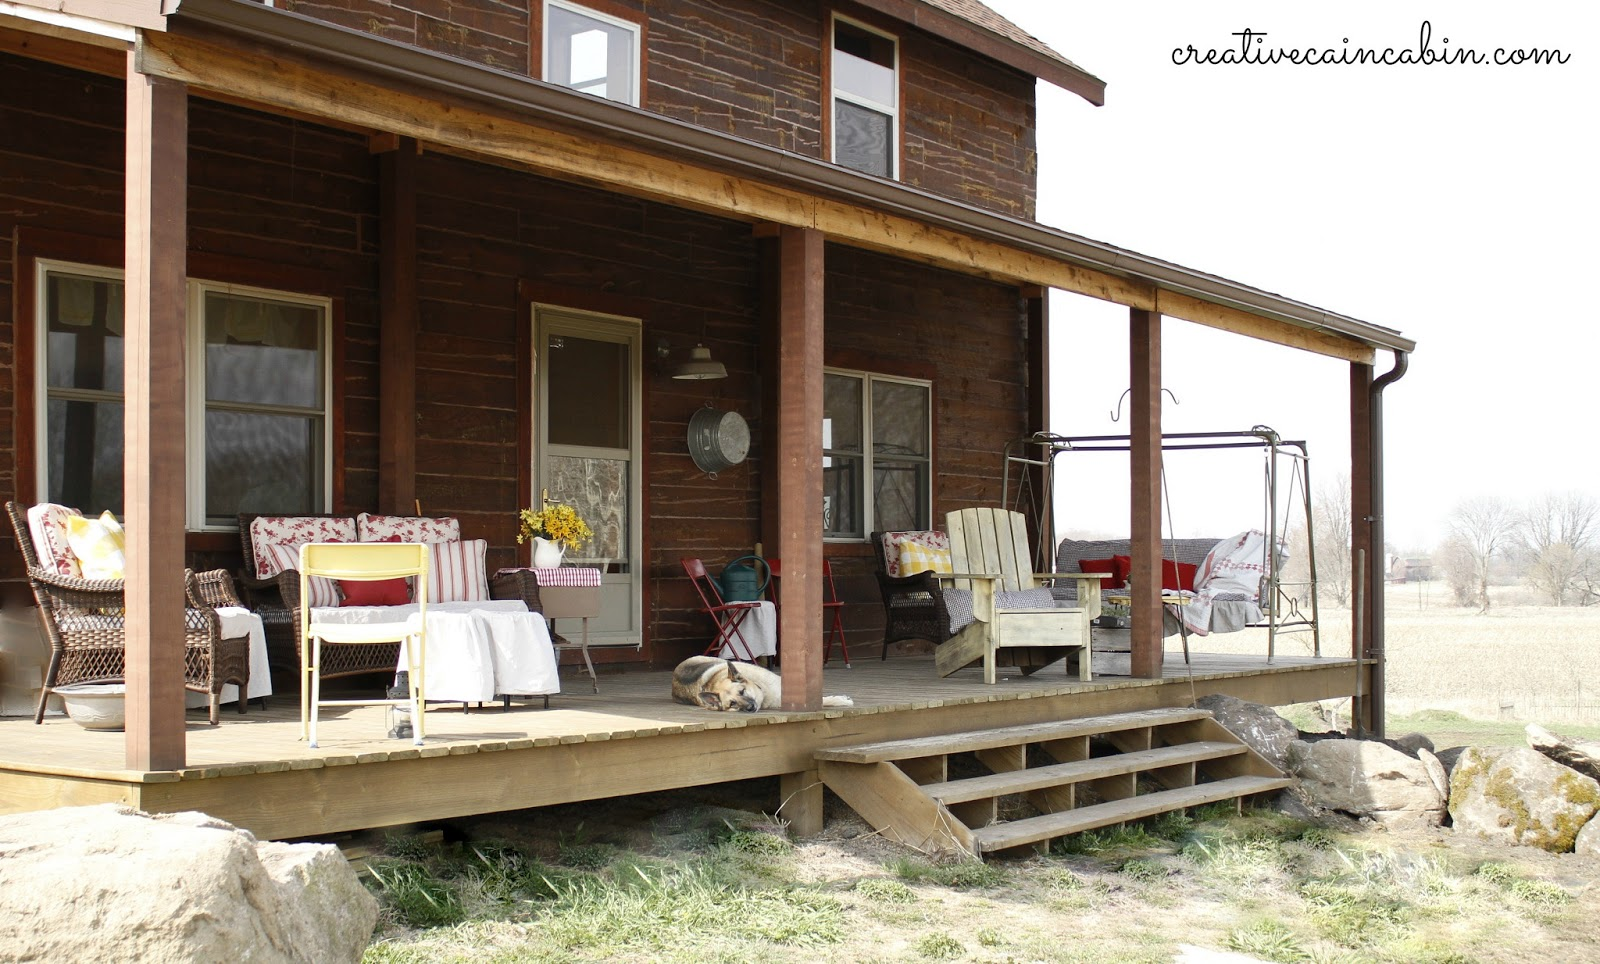 front porch of a log home in spring creative cain cabin